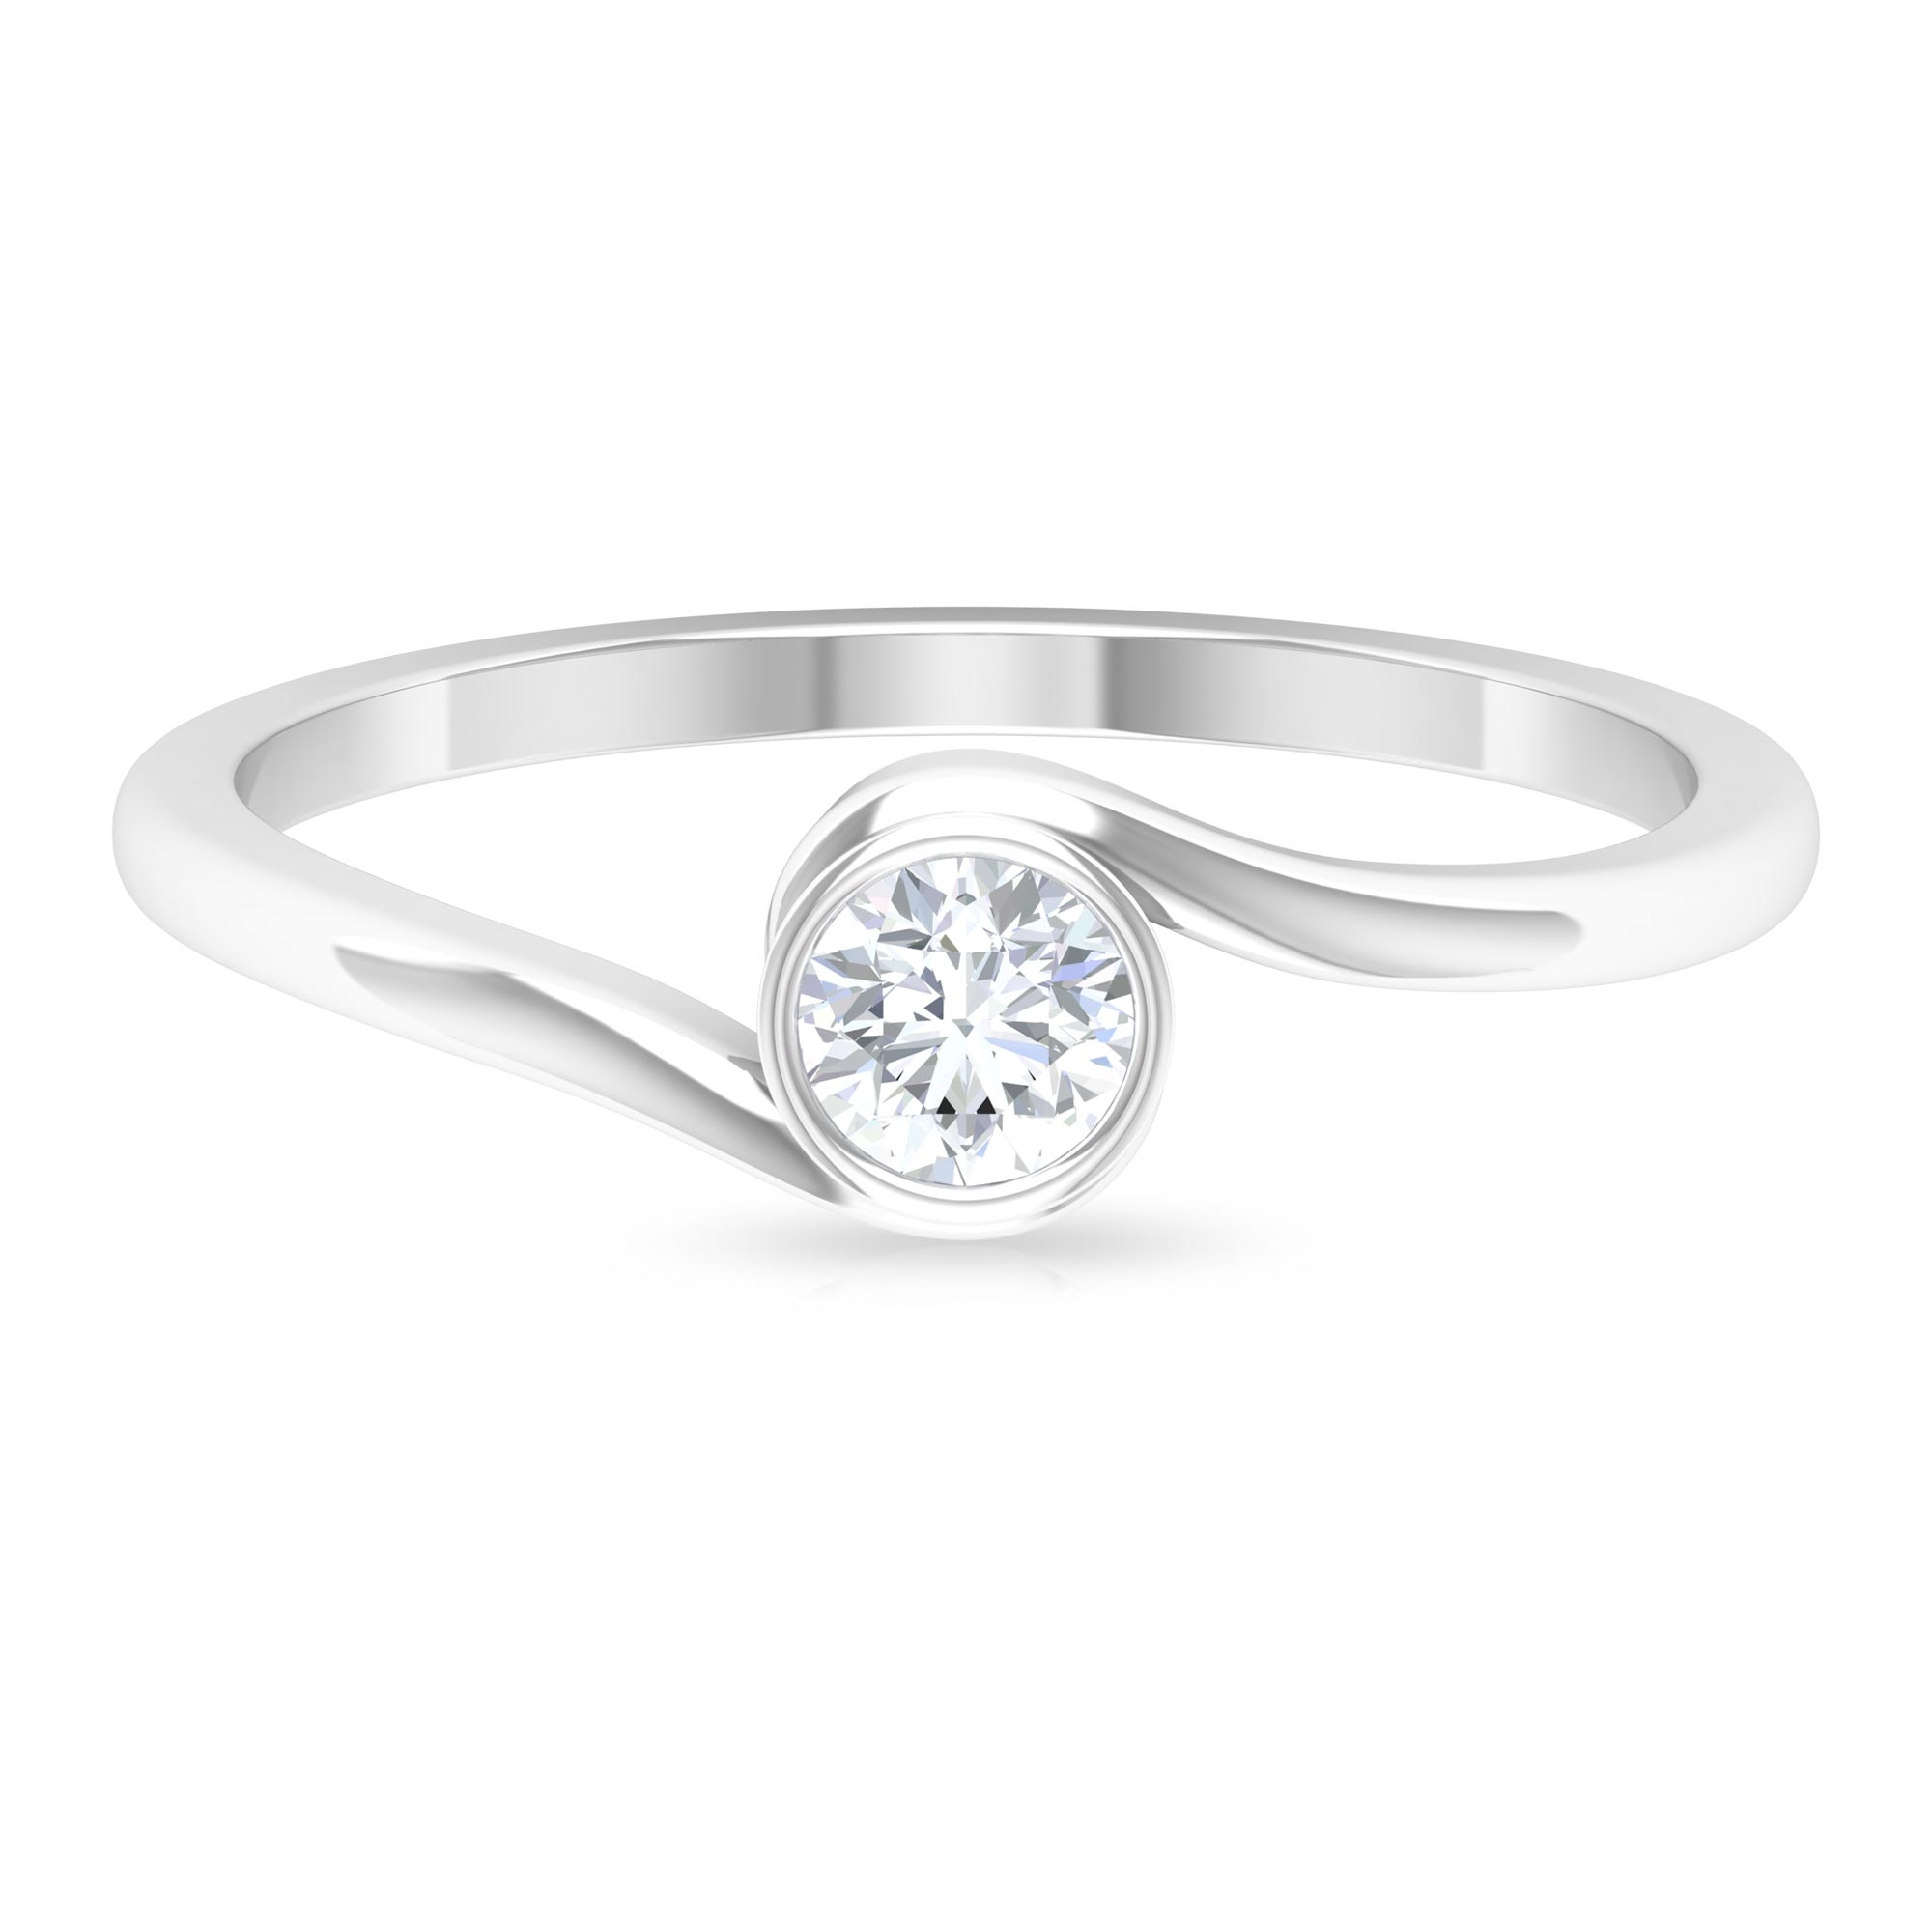 4 MM Round Cut Diamond Solitaire Ring in Bezel Setting with Bypass Shank